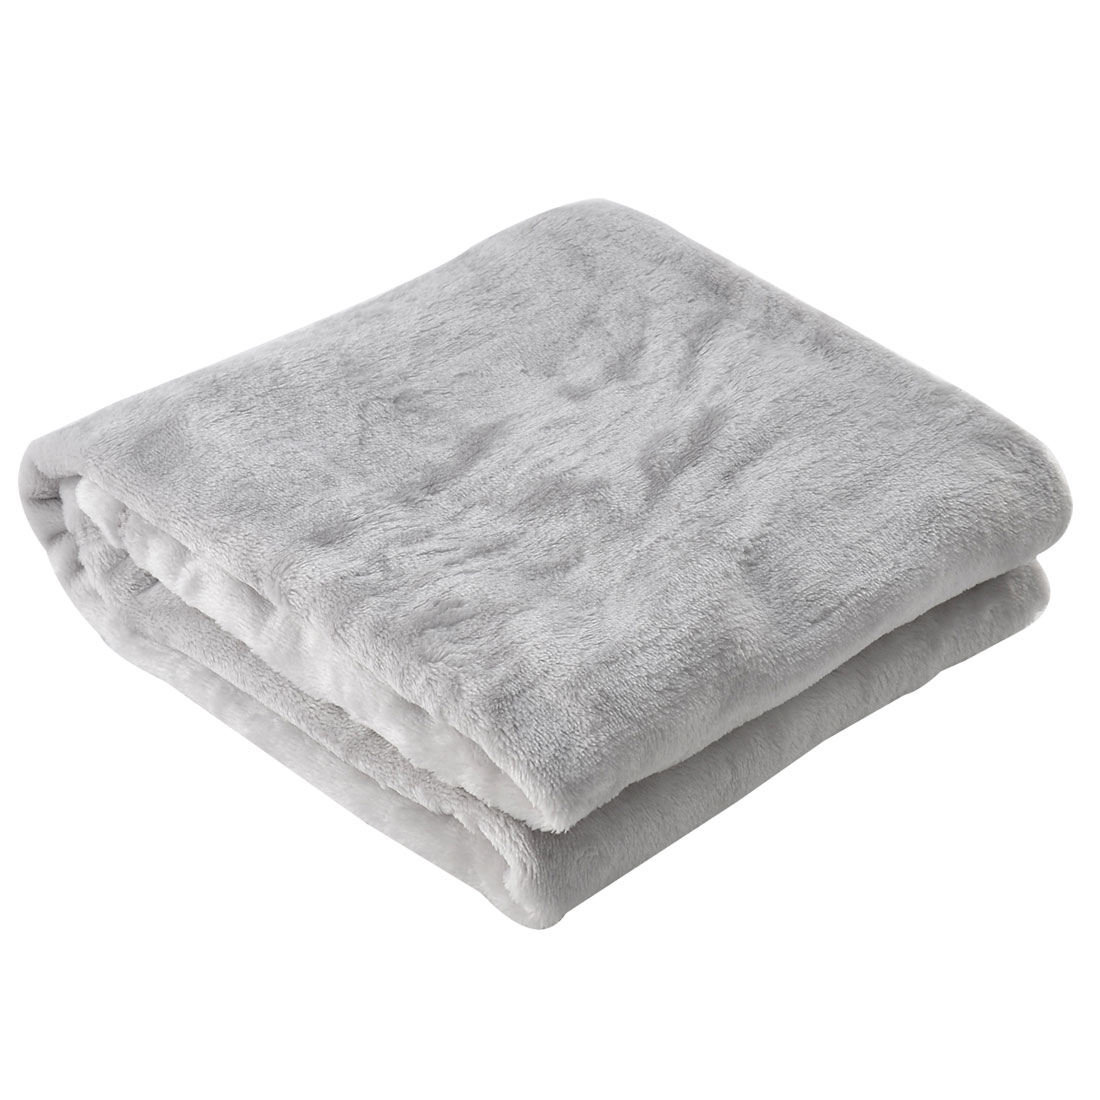 Home Bedroom Warm Soft Throw Pure Blanket Rug Flannel Quilt Silver White